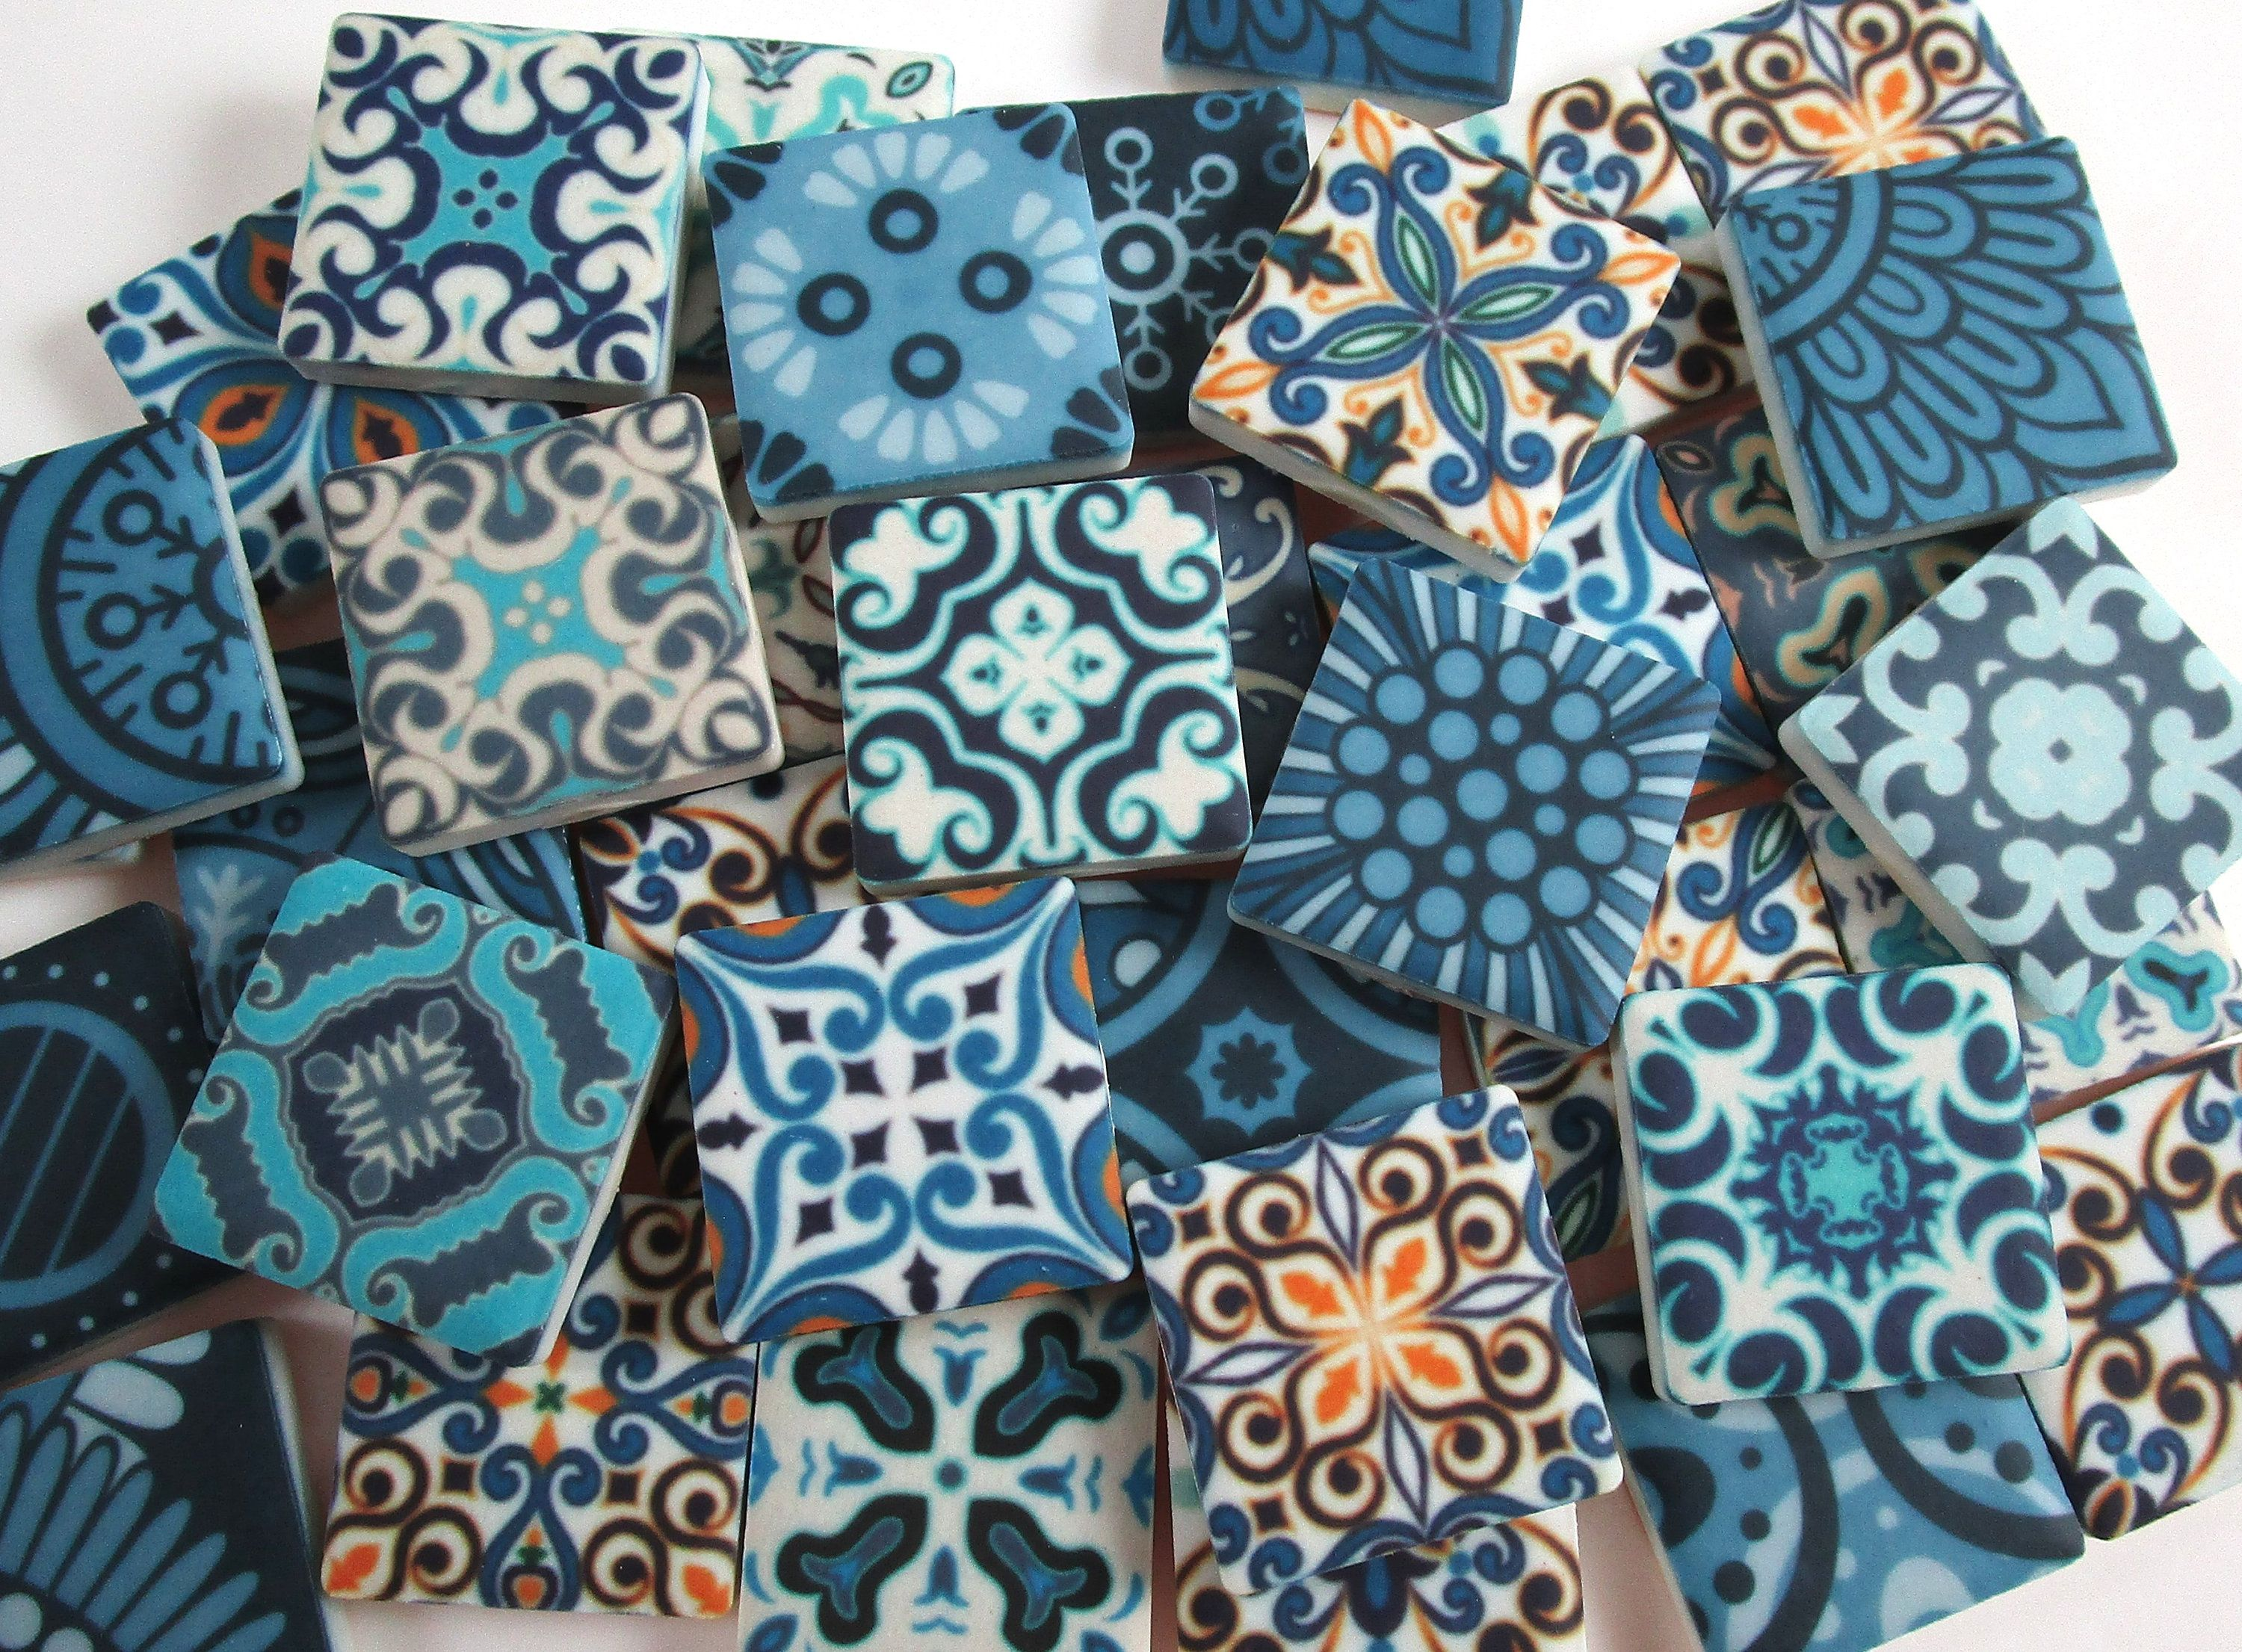 Ceramic Mosaic Tiles Premium Matte Finish 1 Inch 36 Piece Set Vintage Moroccan Mixed Mosaic Tiles Mosaic Making Perfect For Jewelry Ceramic Mosaic Tile Mosaic Tiles Mosaic